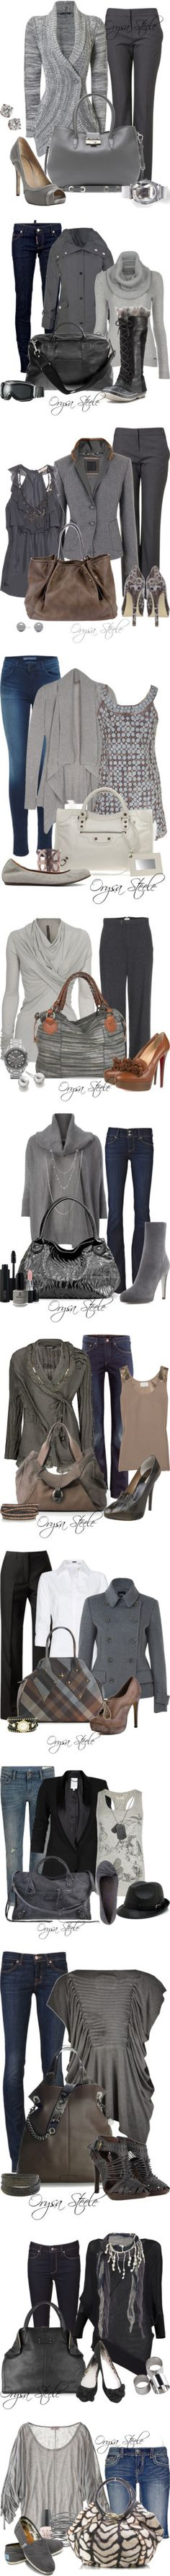 outfits, fashion, fall clothes, colors, grey